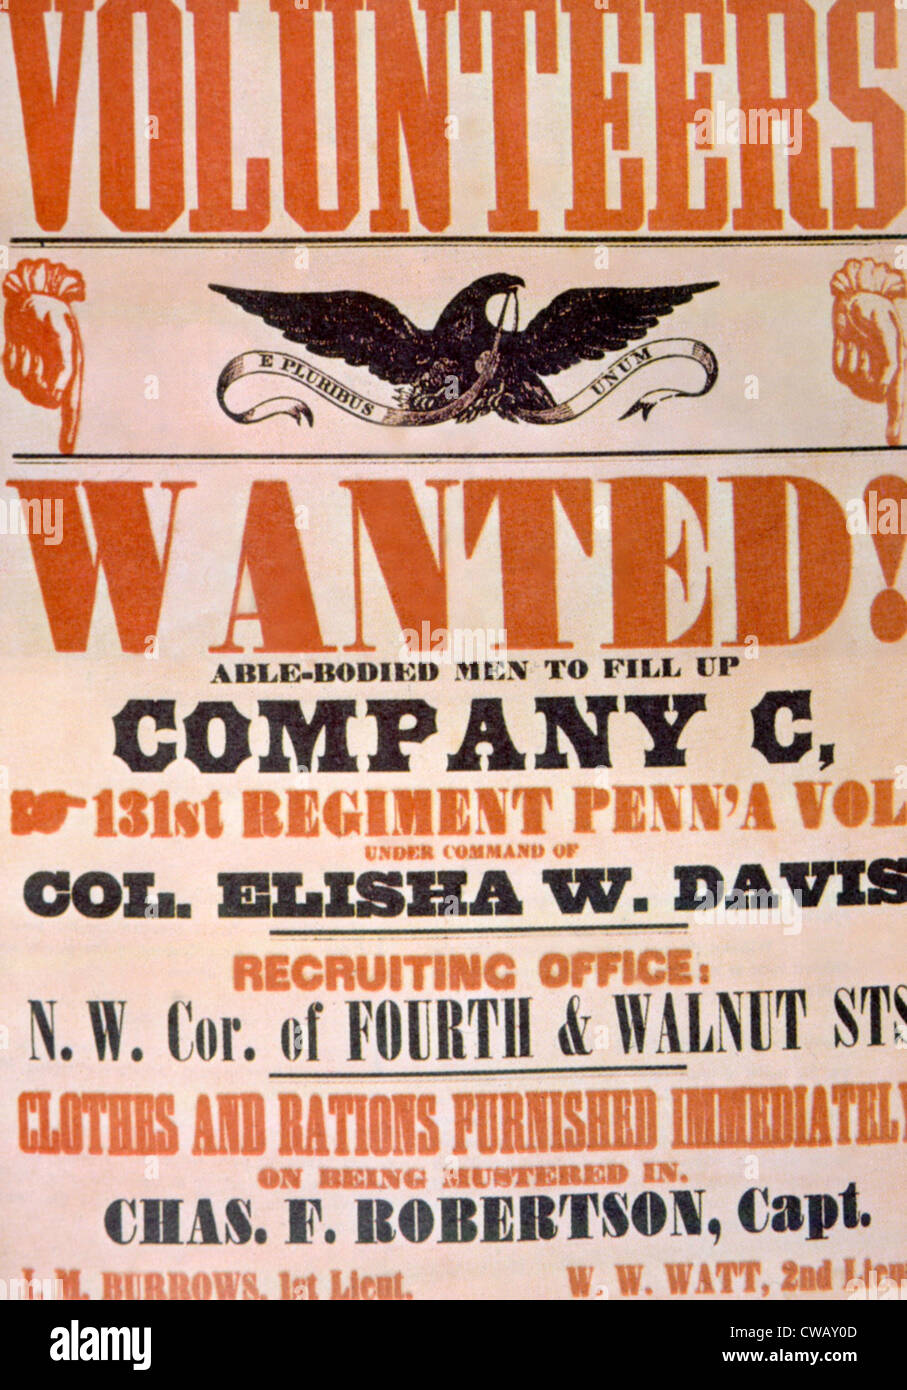 Union Army recruiting poster, ca. 1861 - Stock Image